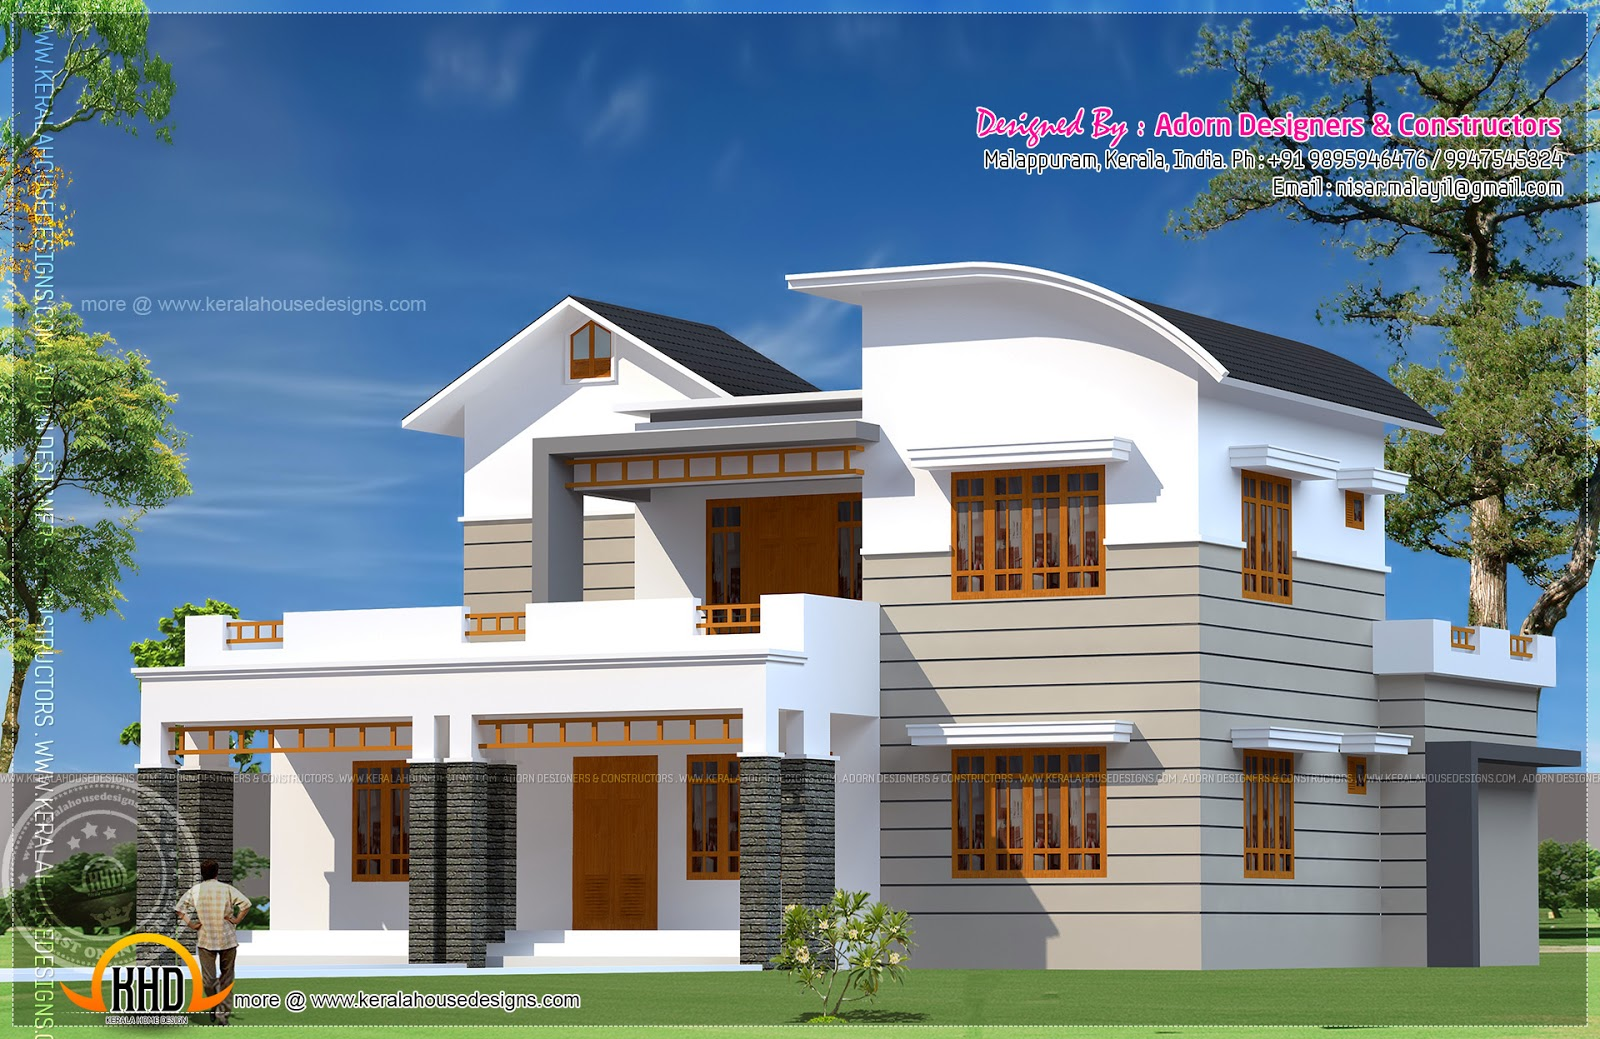 5 bedroom home plans kerala for 5 bedroom home plans